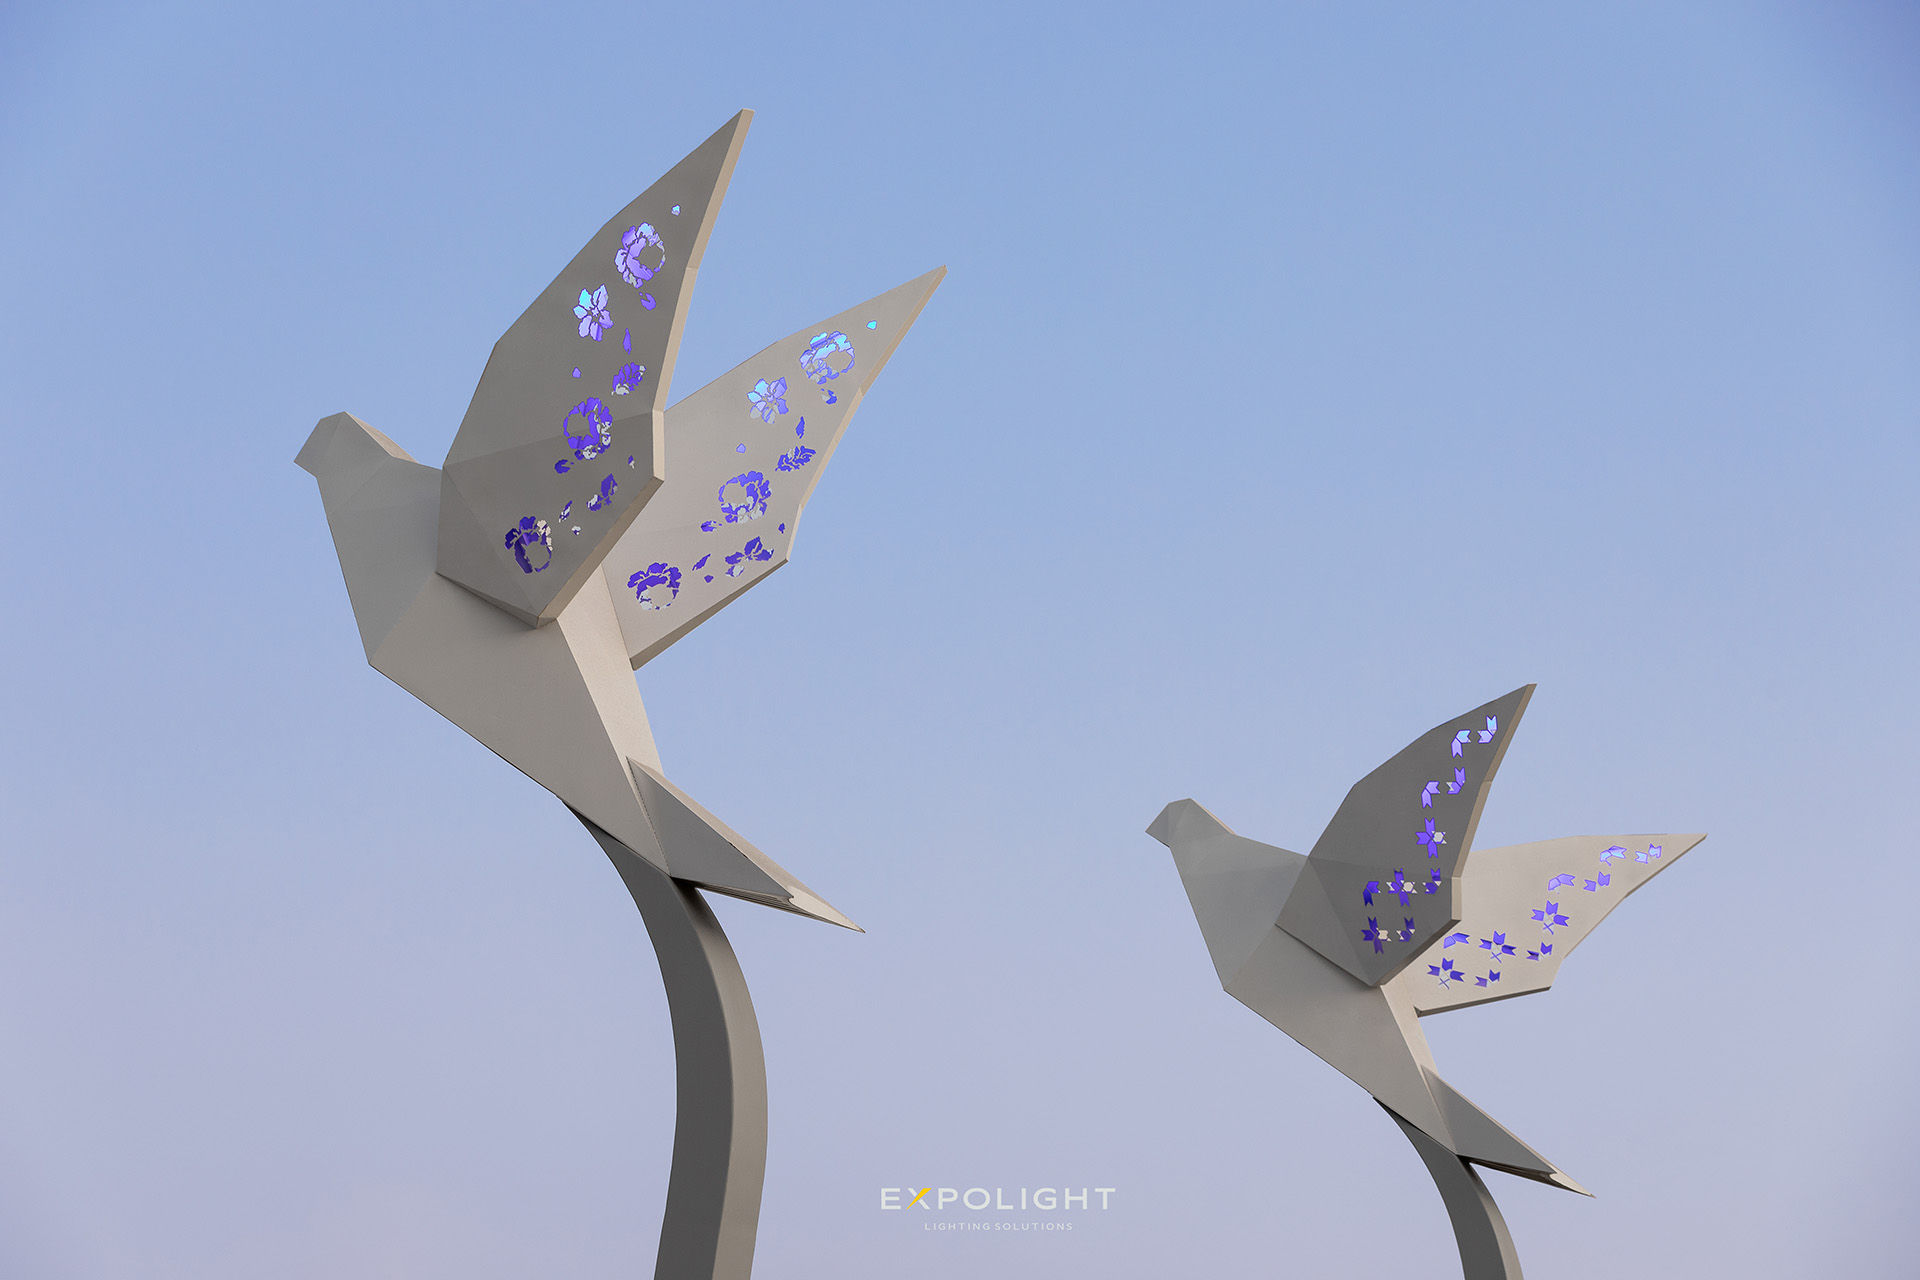 LIGHT FLOWERS: an interview with Nikolay Kabluka, the founder of Expolight